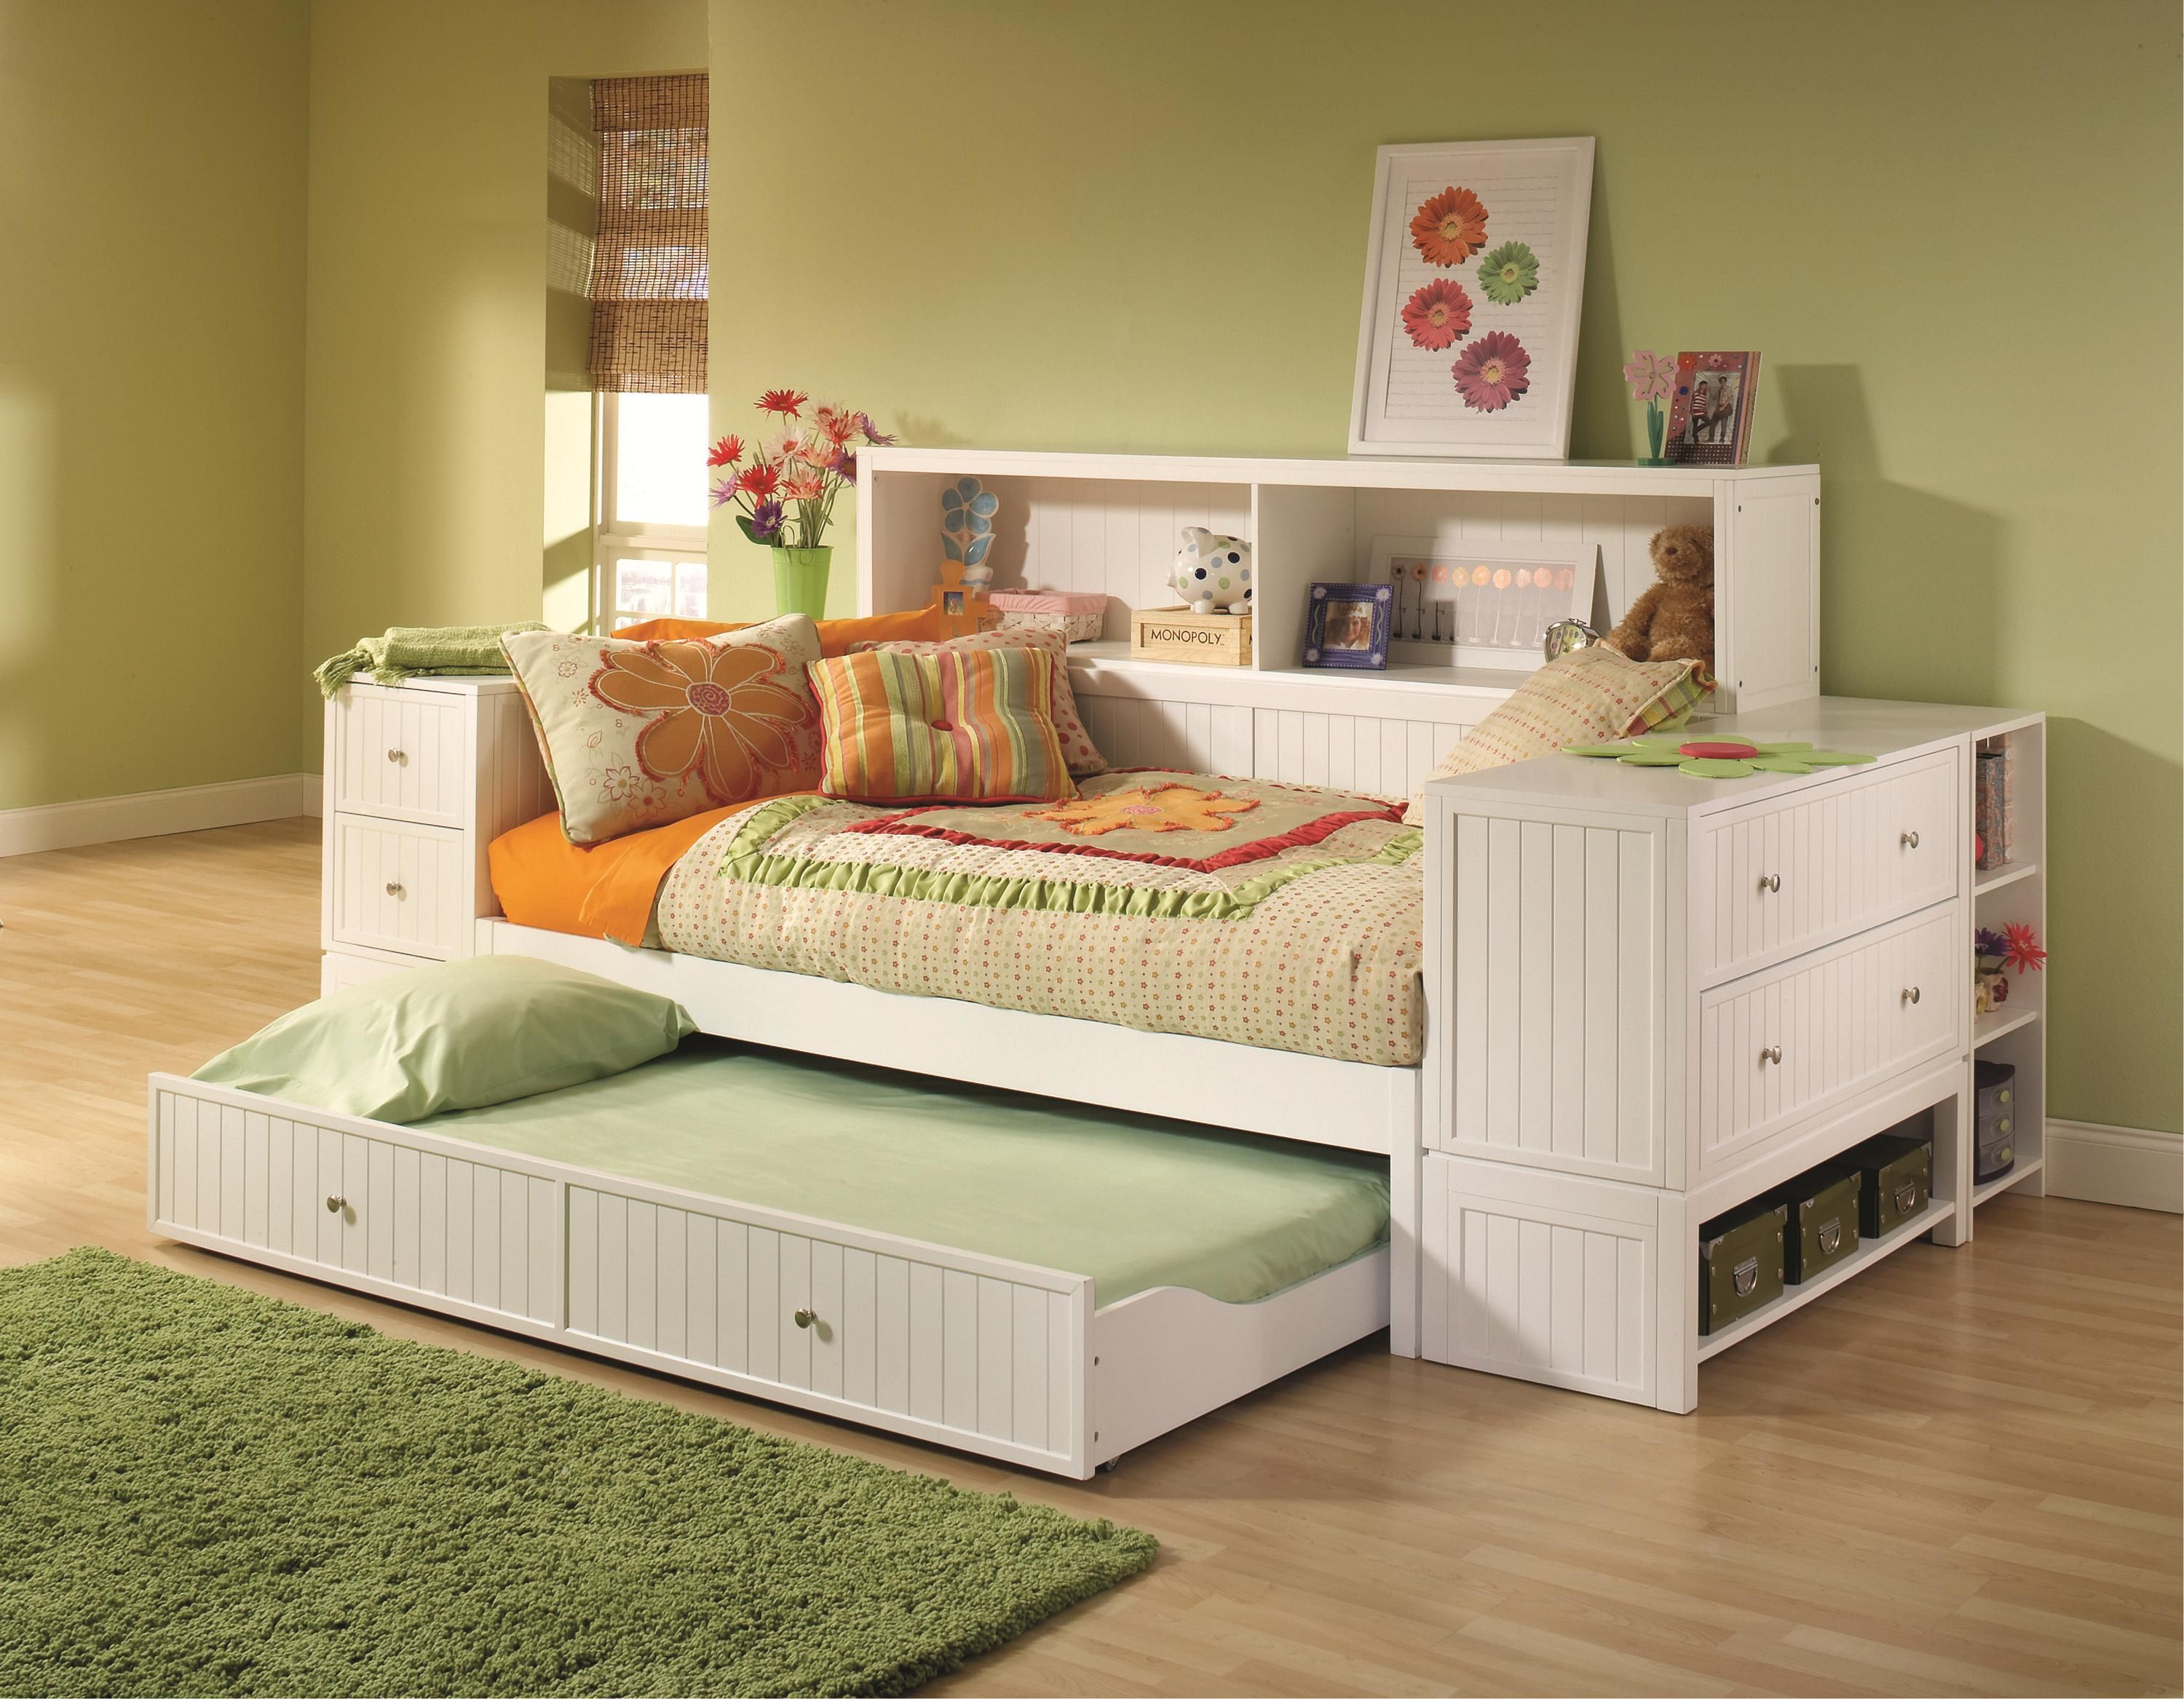 Hilale Furniture Cody Bookcase Daybed With Trundle Storage Drawer Daybeds